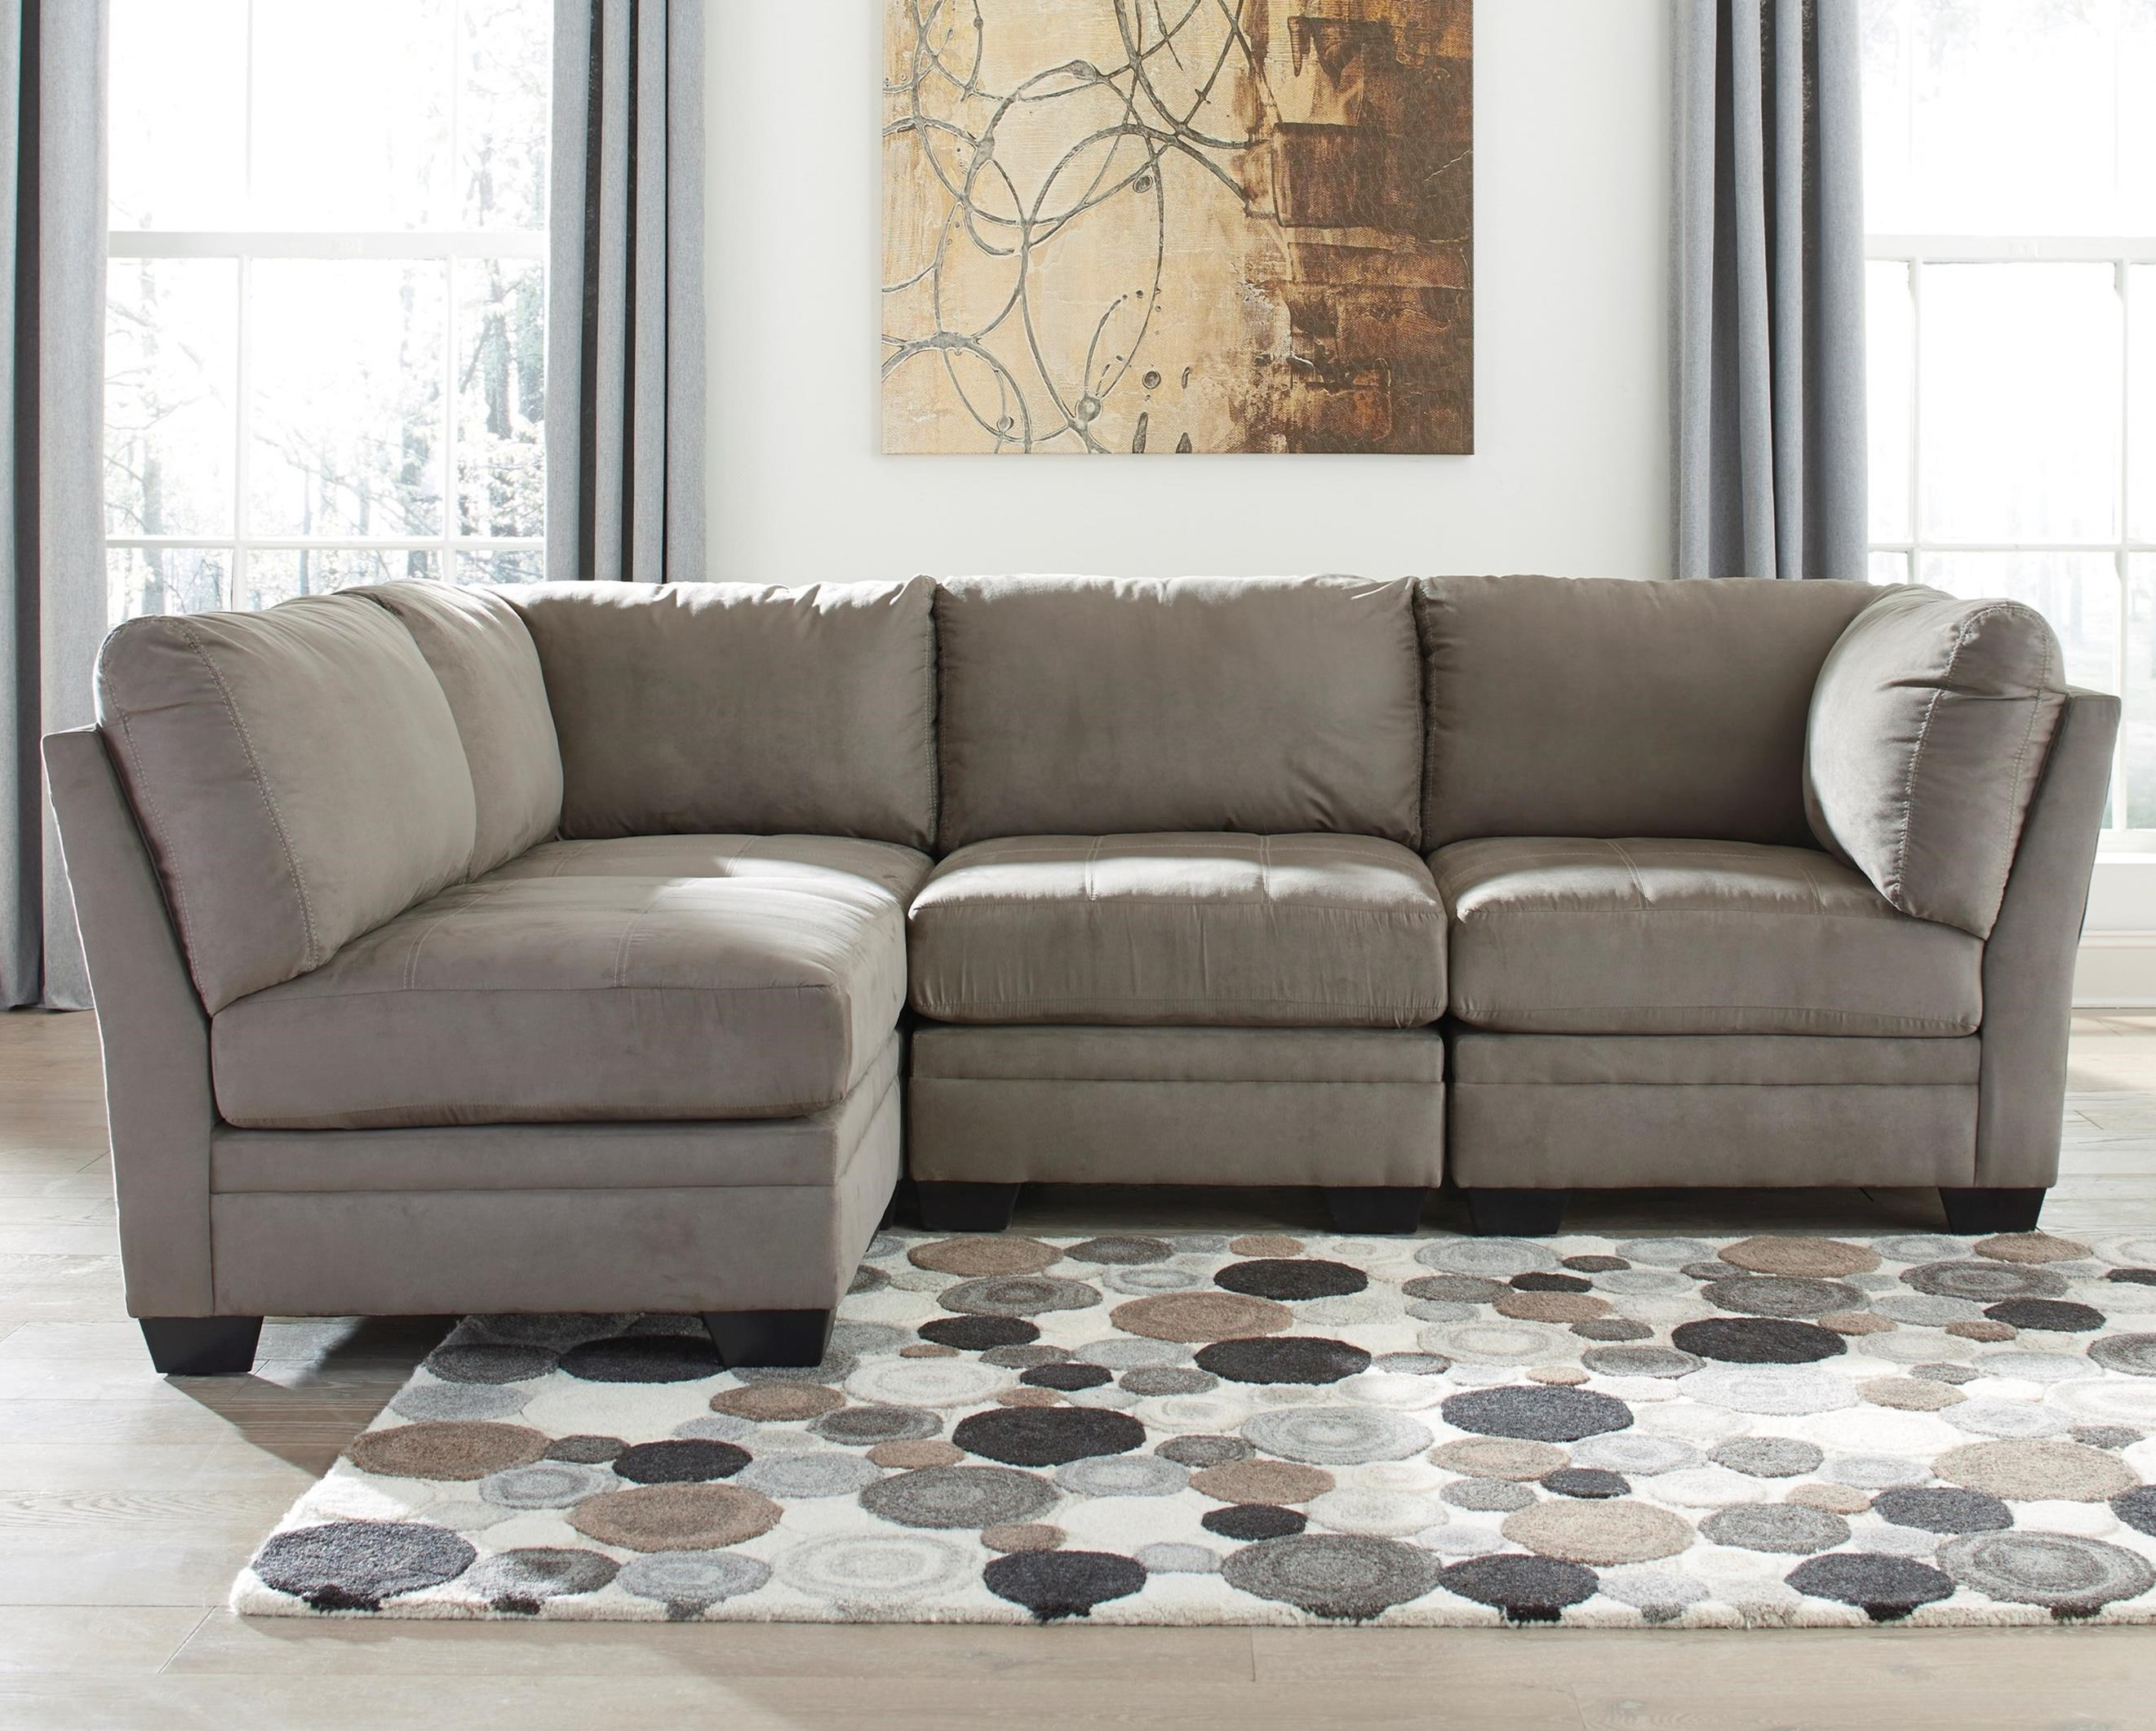 Signature Design by Ashley Iago 4-Piece Modular Sectional - Item Number: 6510346x2+2x51